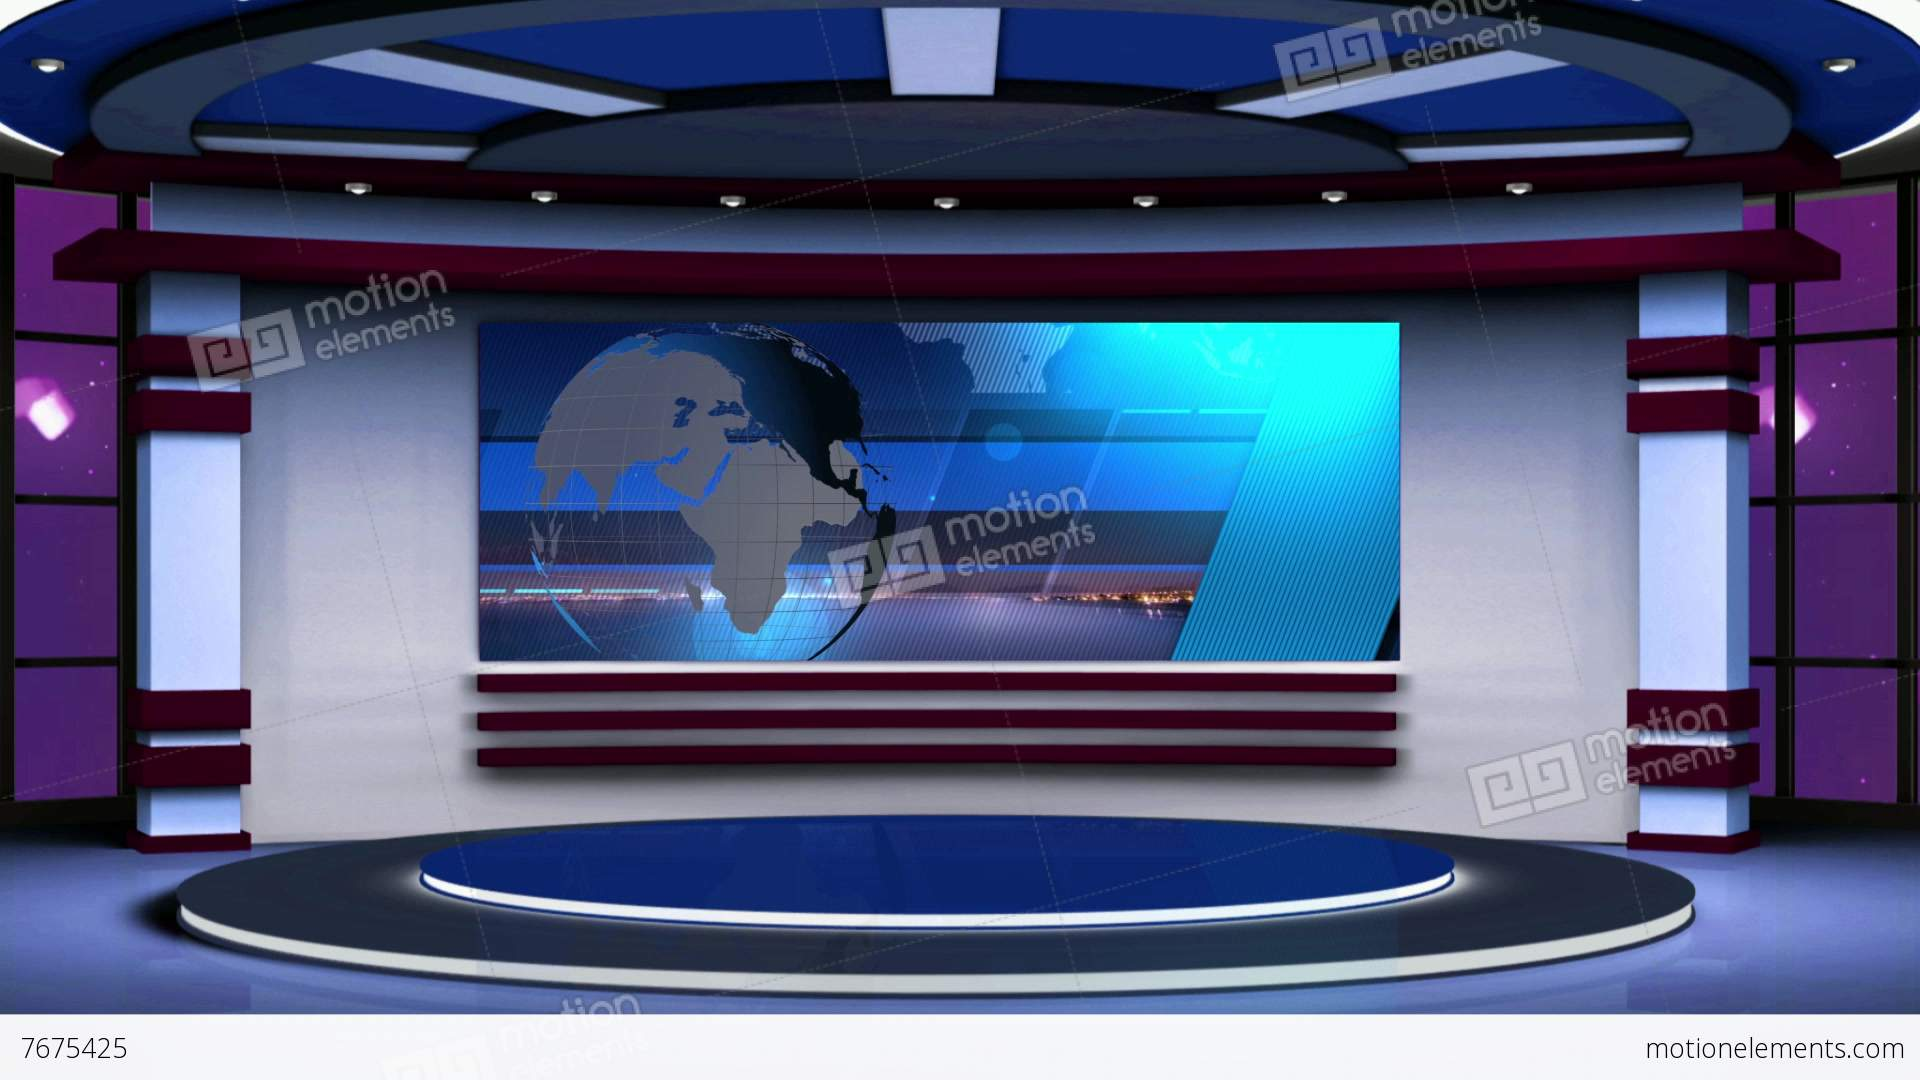 News tv studio set 63 virtual background loop stock for Latest design news